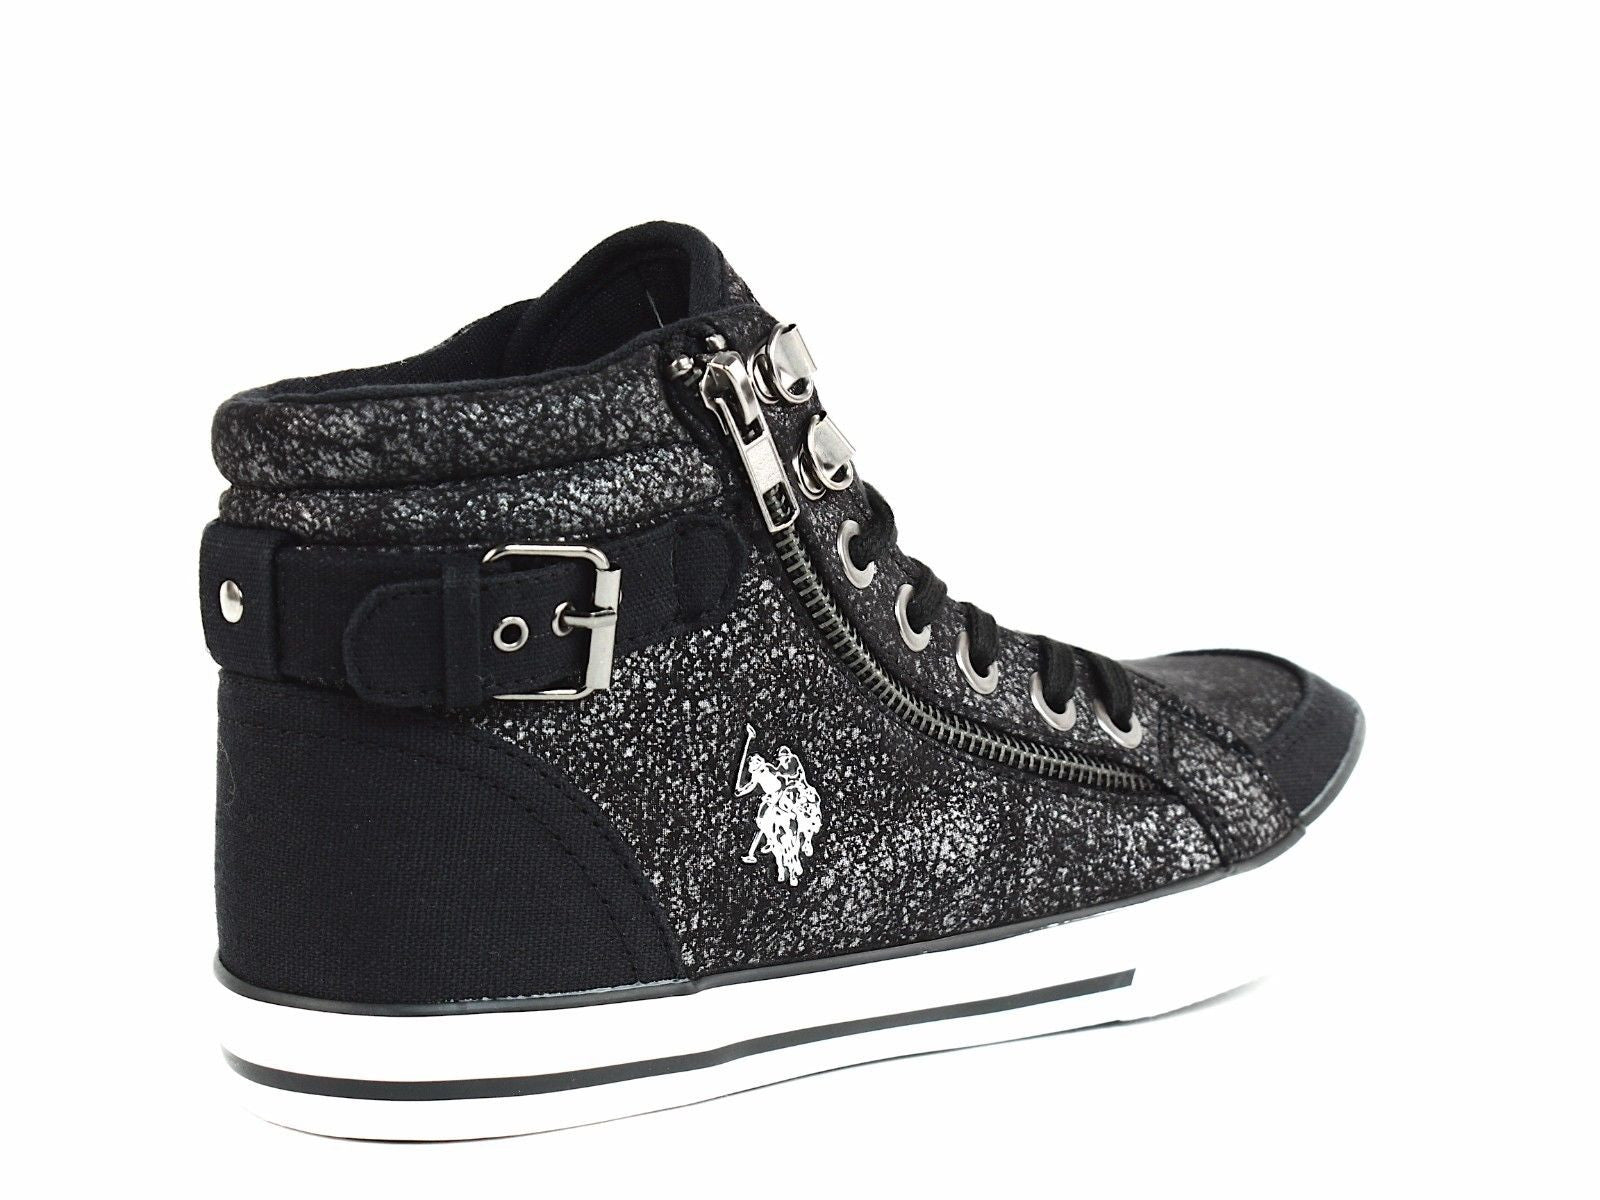 US POLO AssnCADY High Top Womens Casual Lace Up Black Textile Shoes  Sneakers